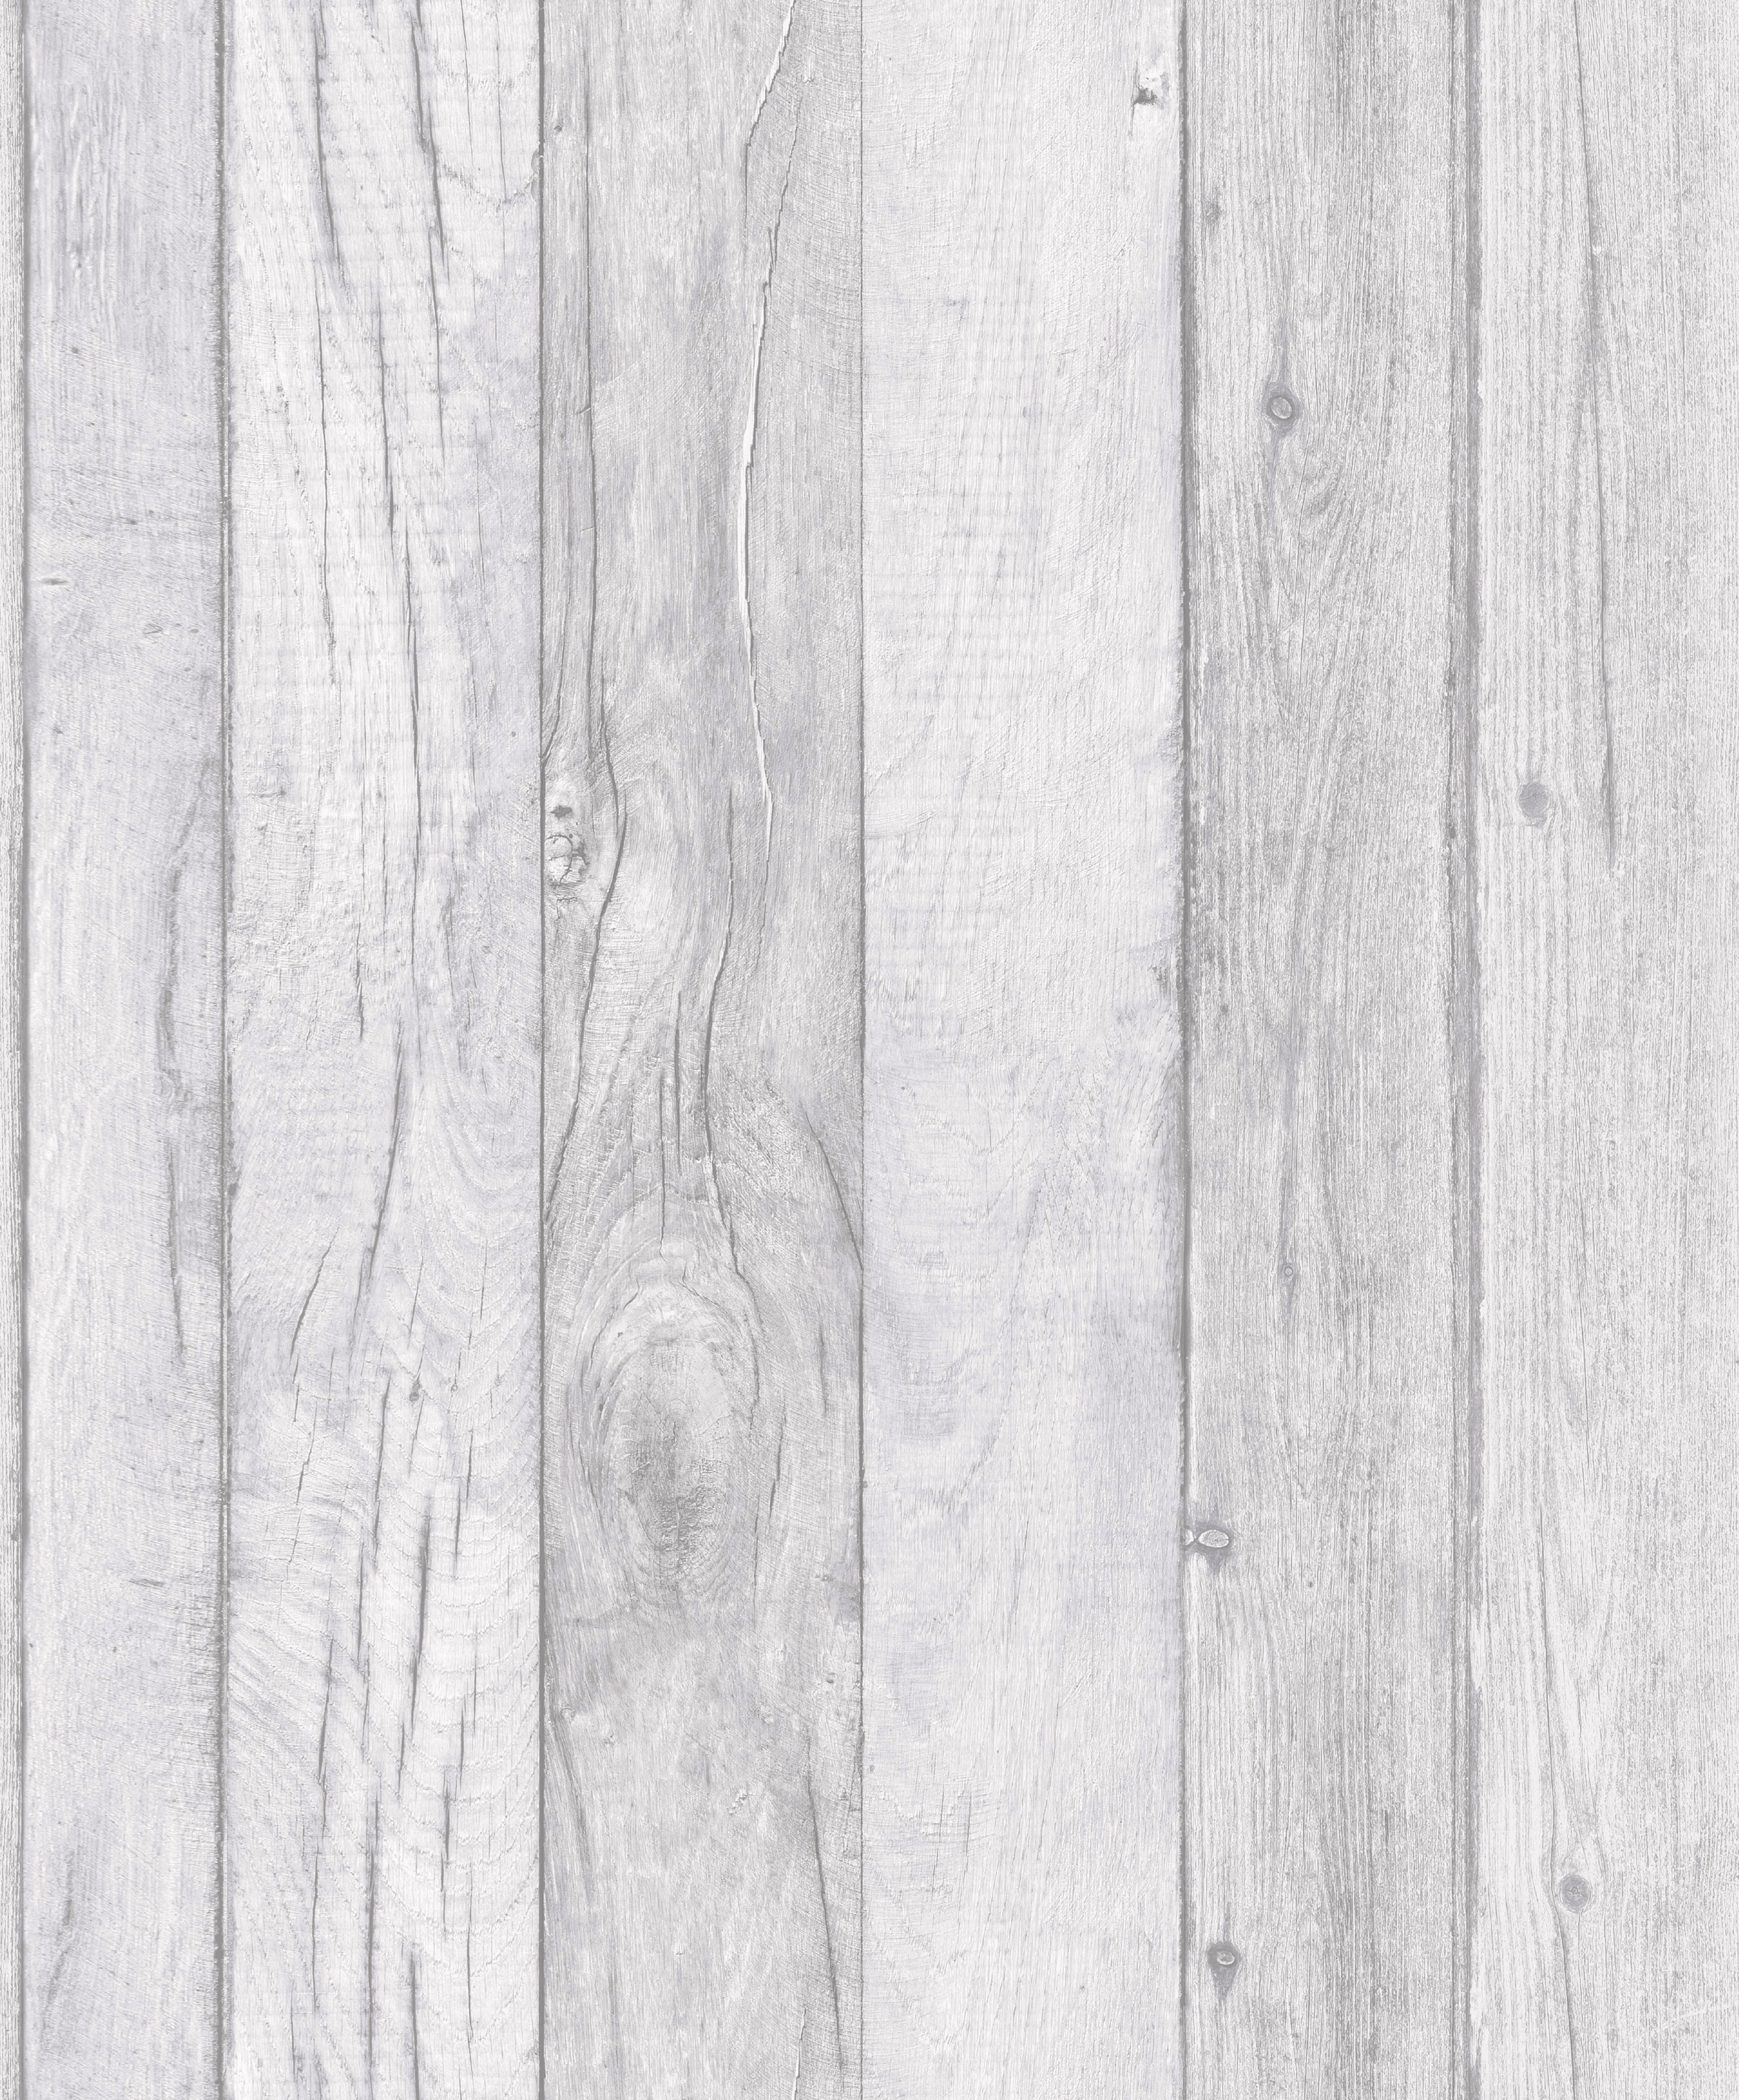 Grandeco Ideco Home Wood Wallpaper A17402 Grey